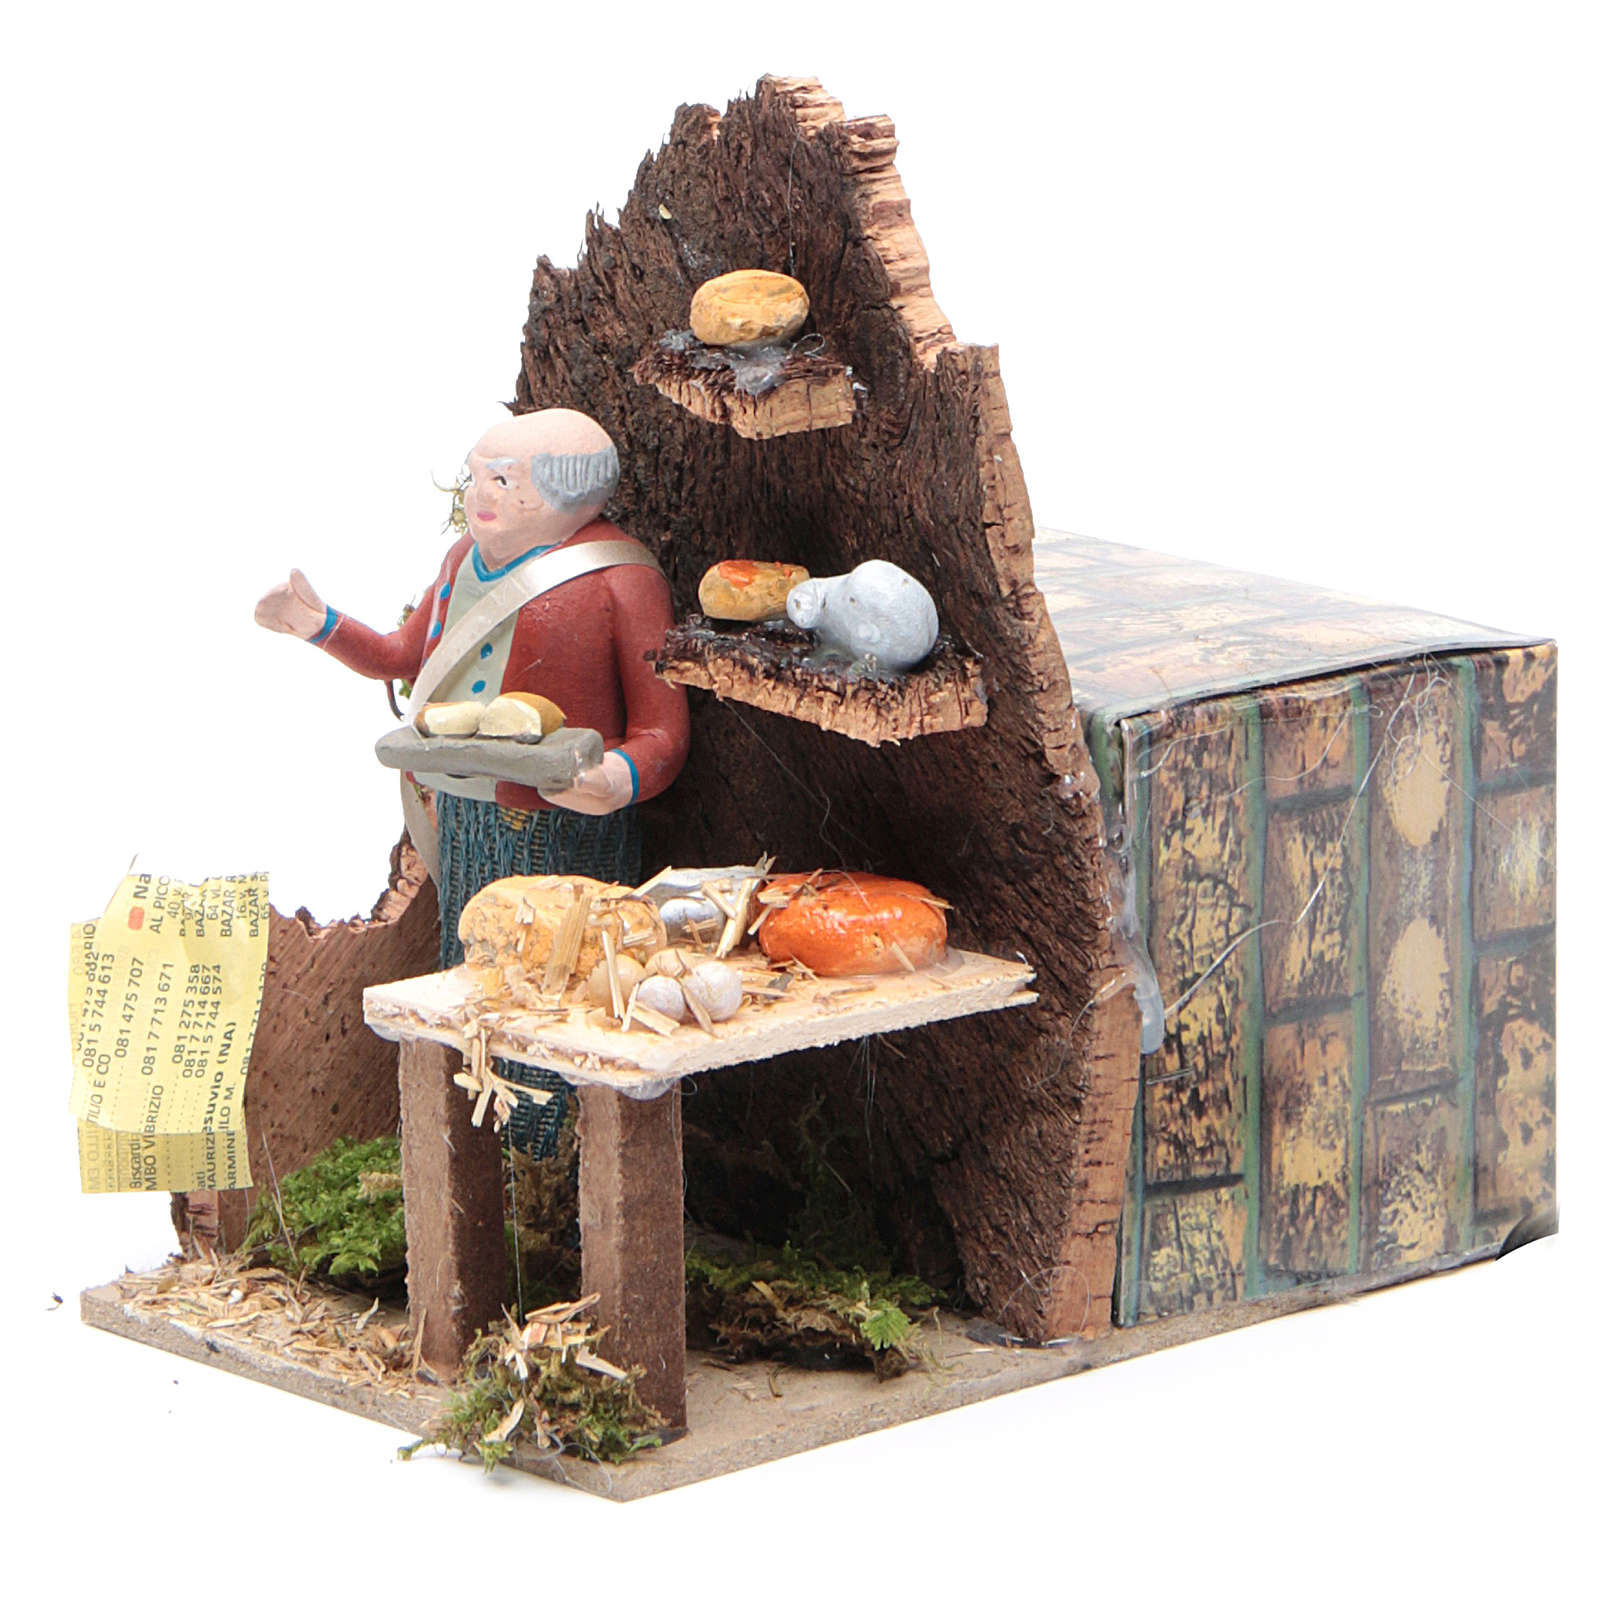 Man selling cheese measuring 10cm, animated nativity figurine 3